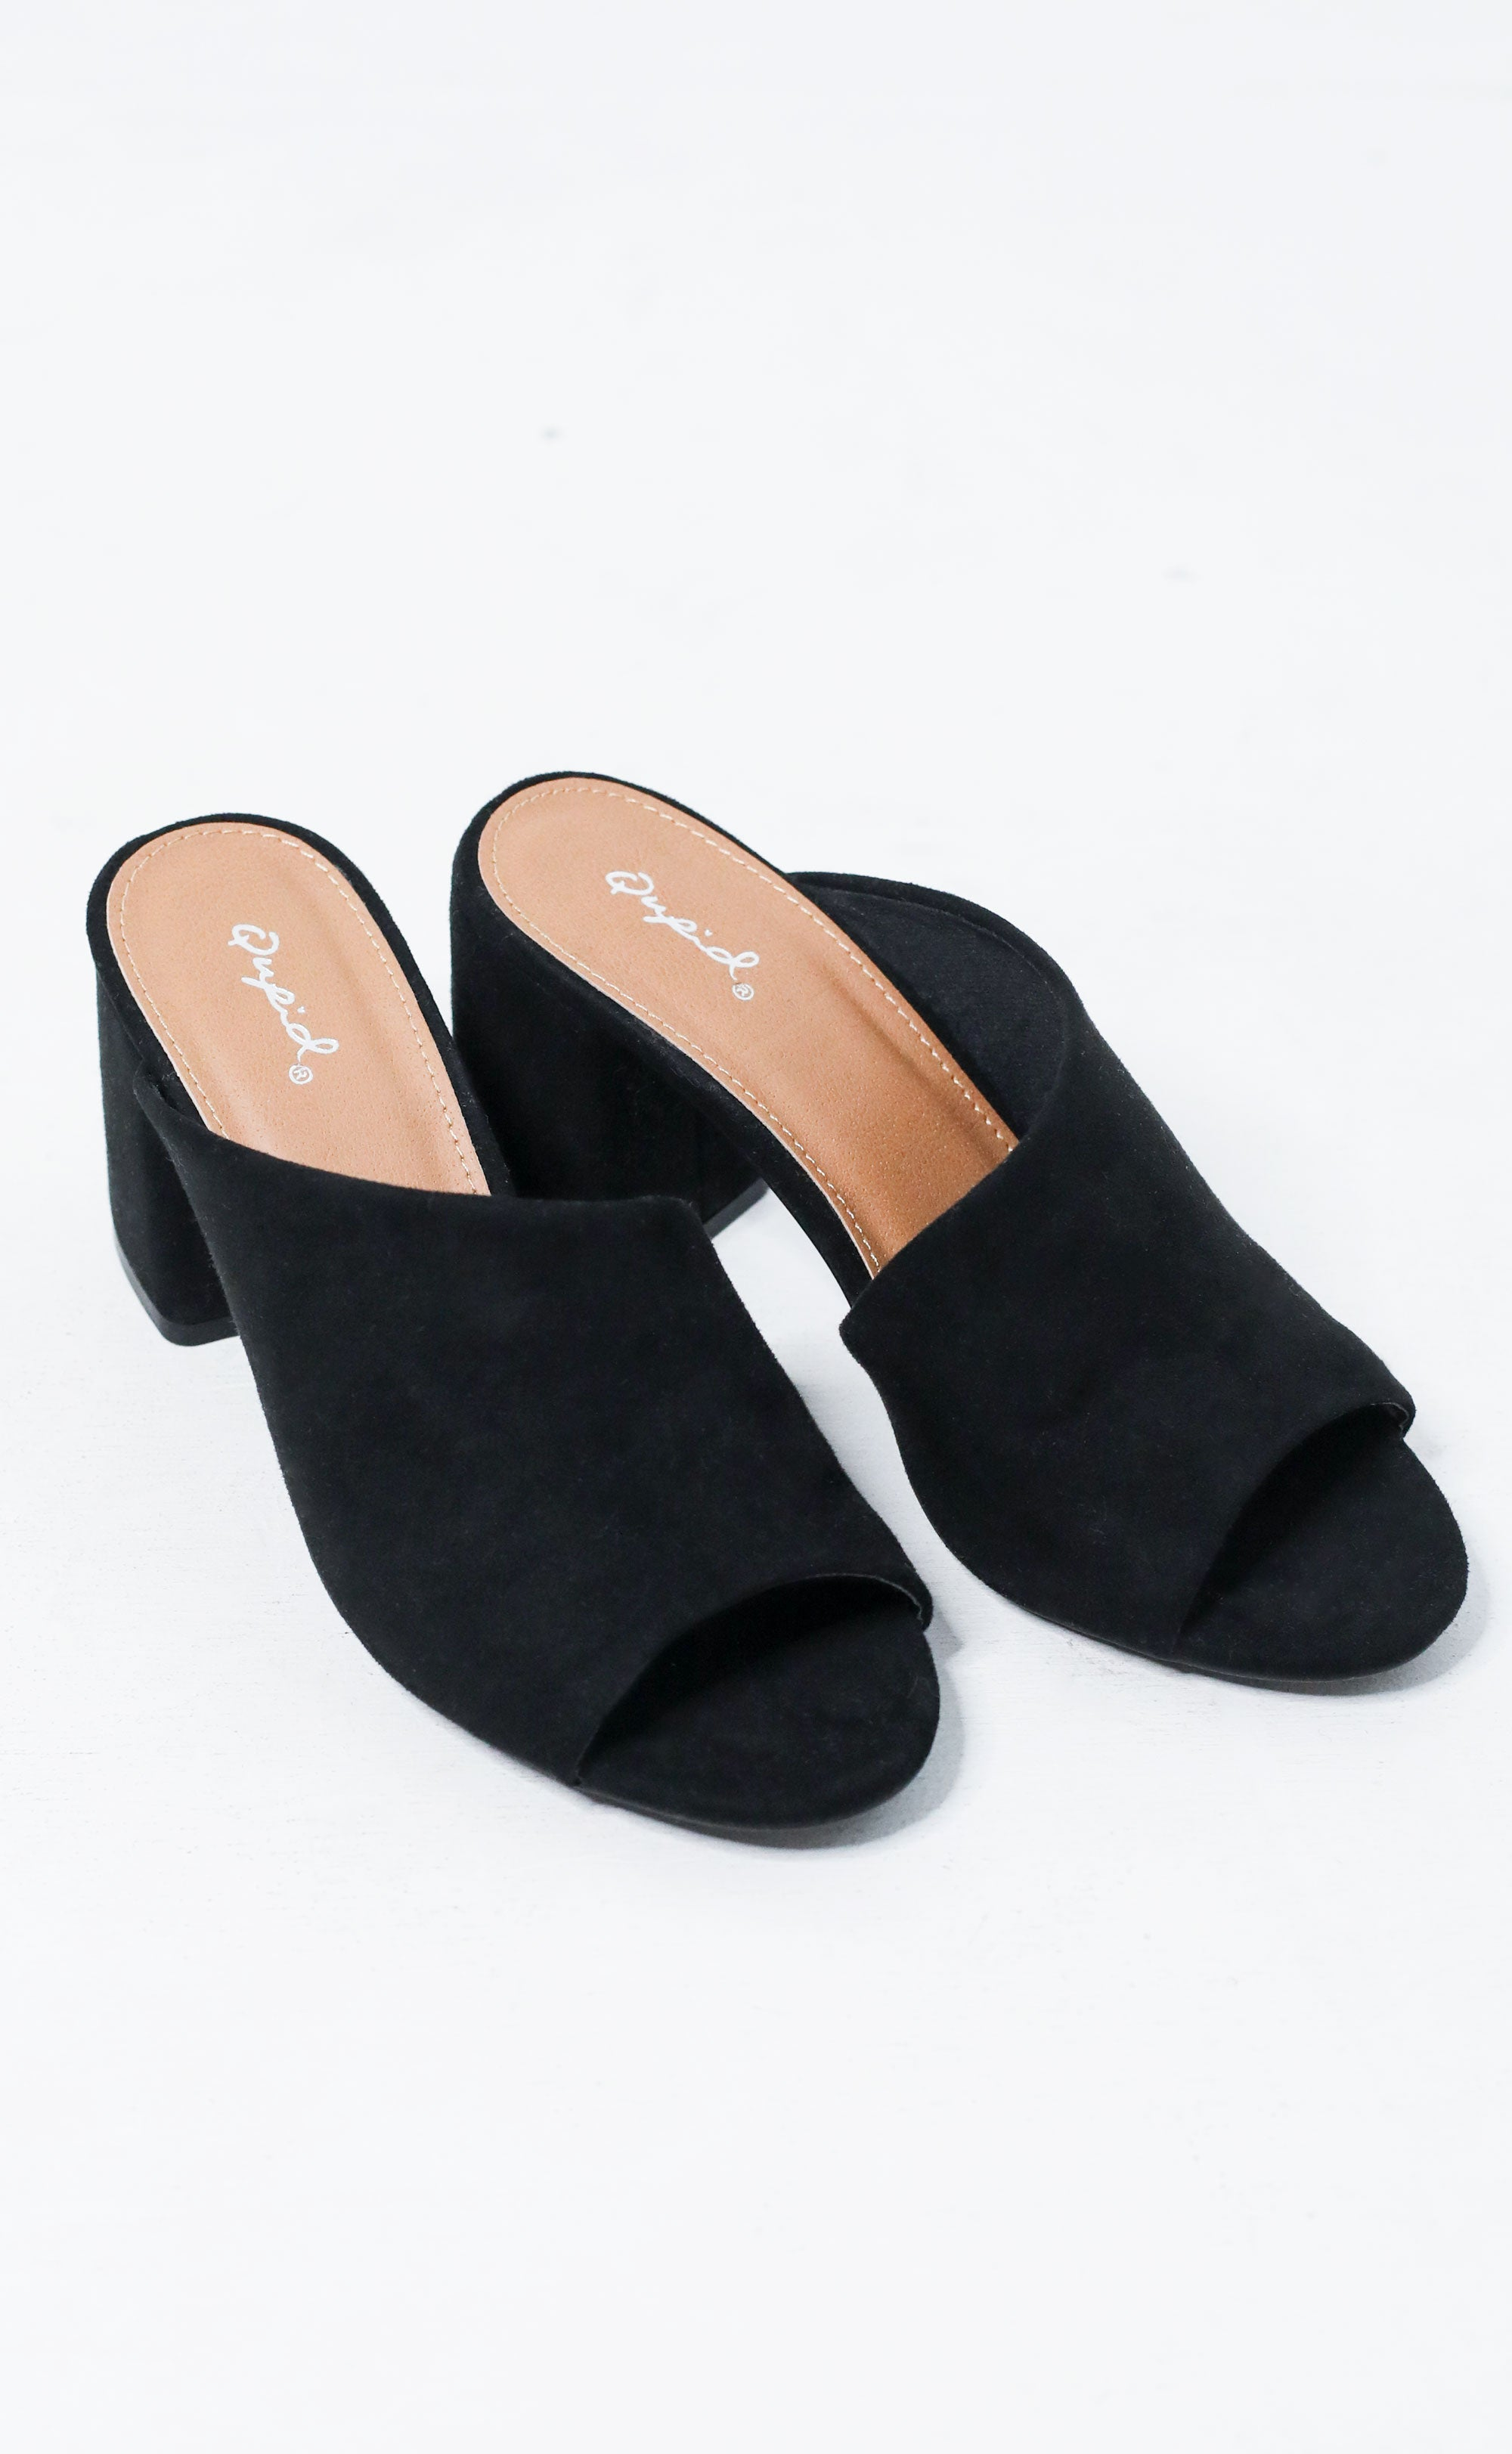 catwalk mule - black